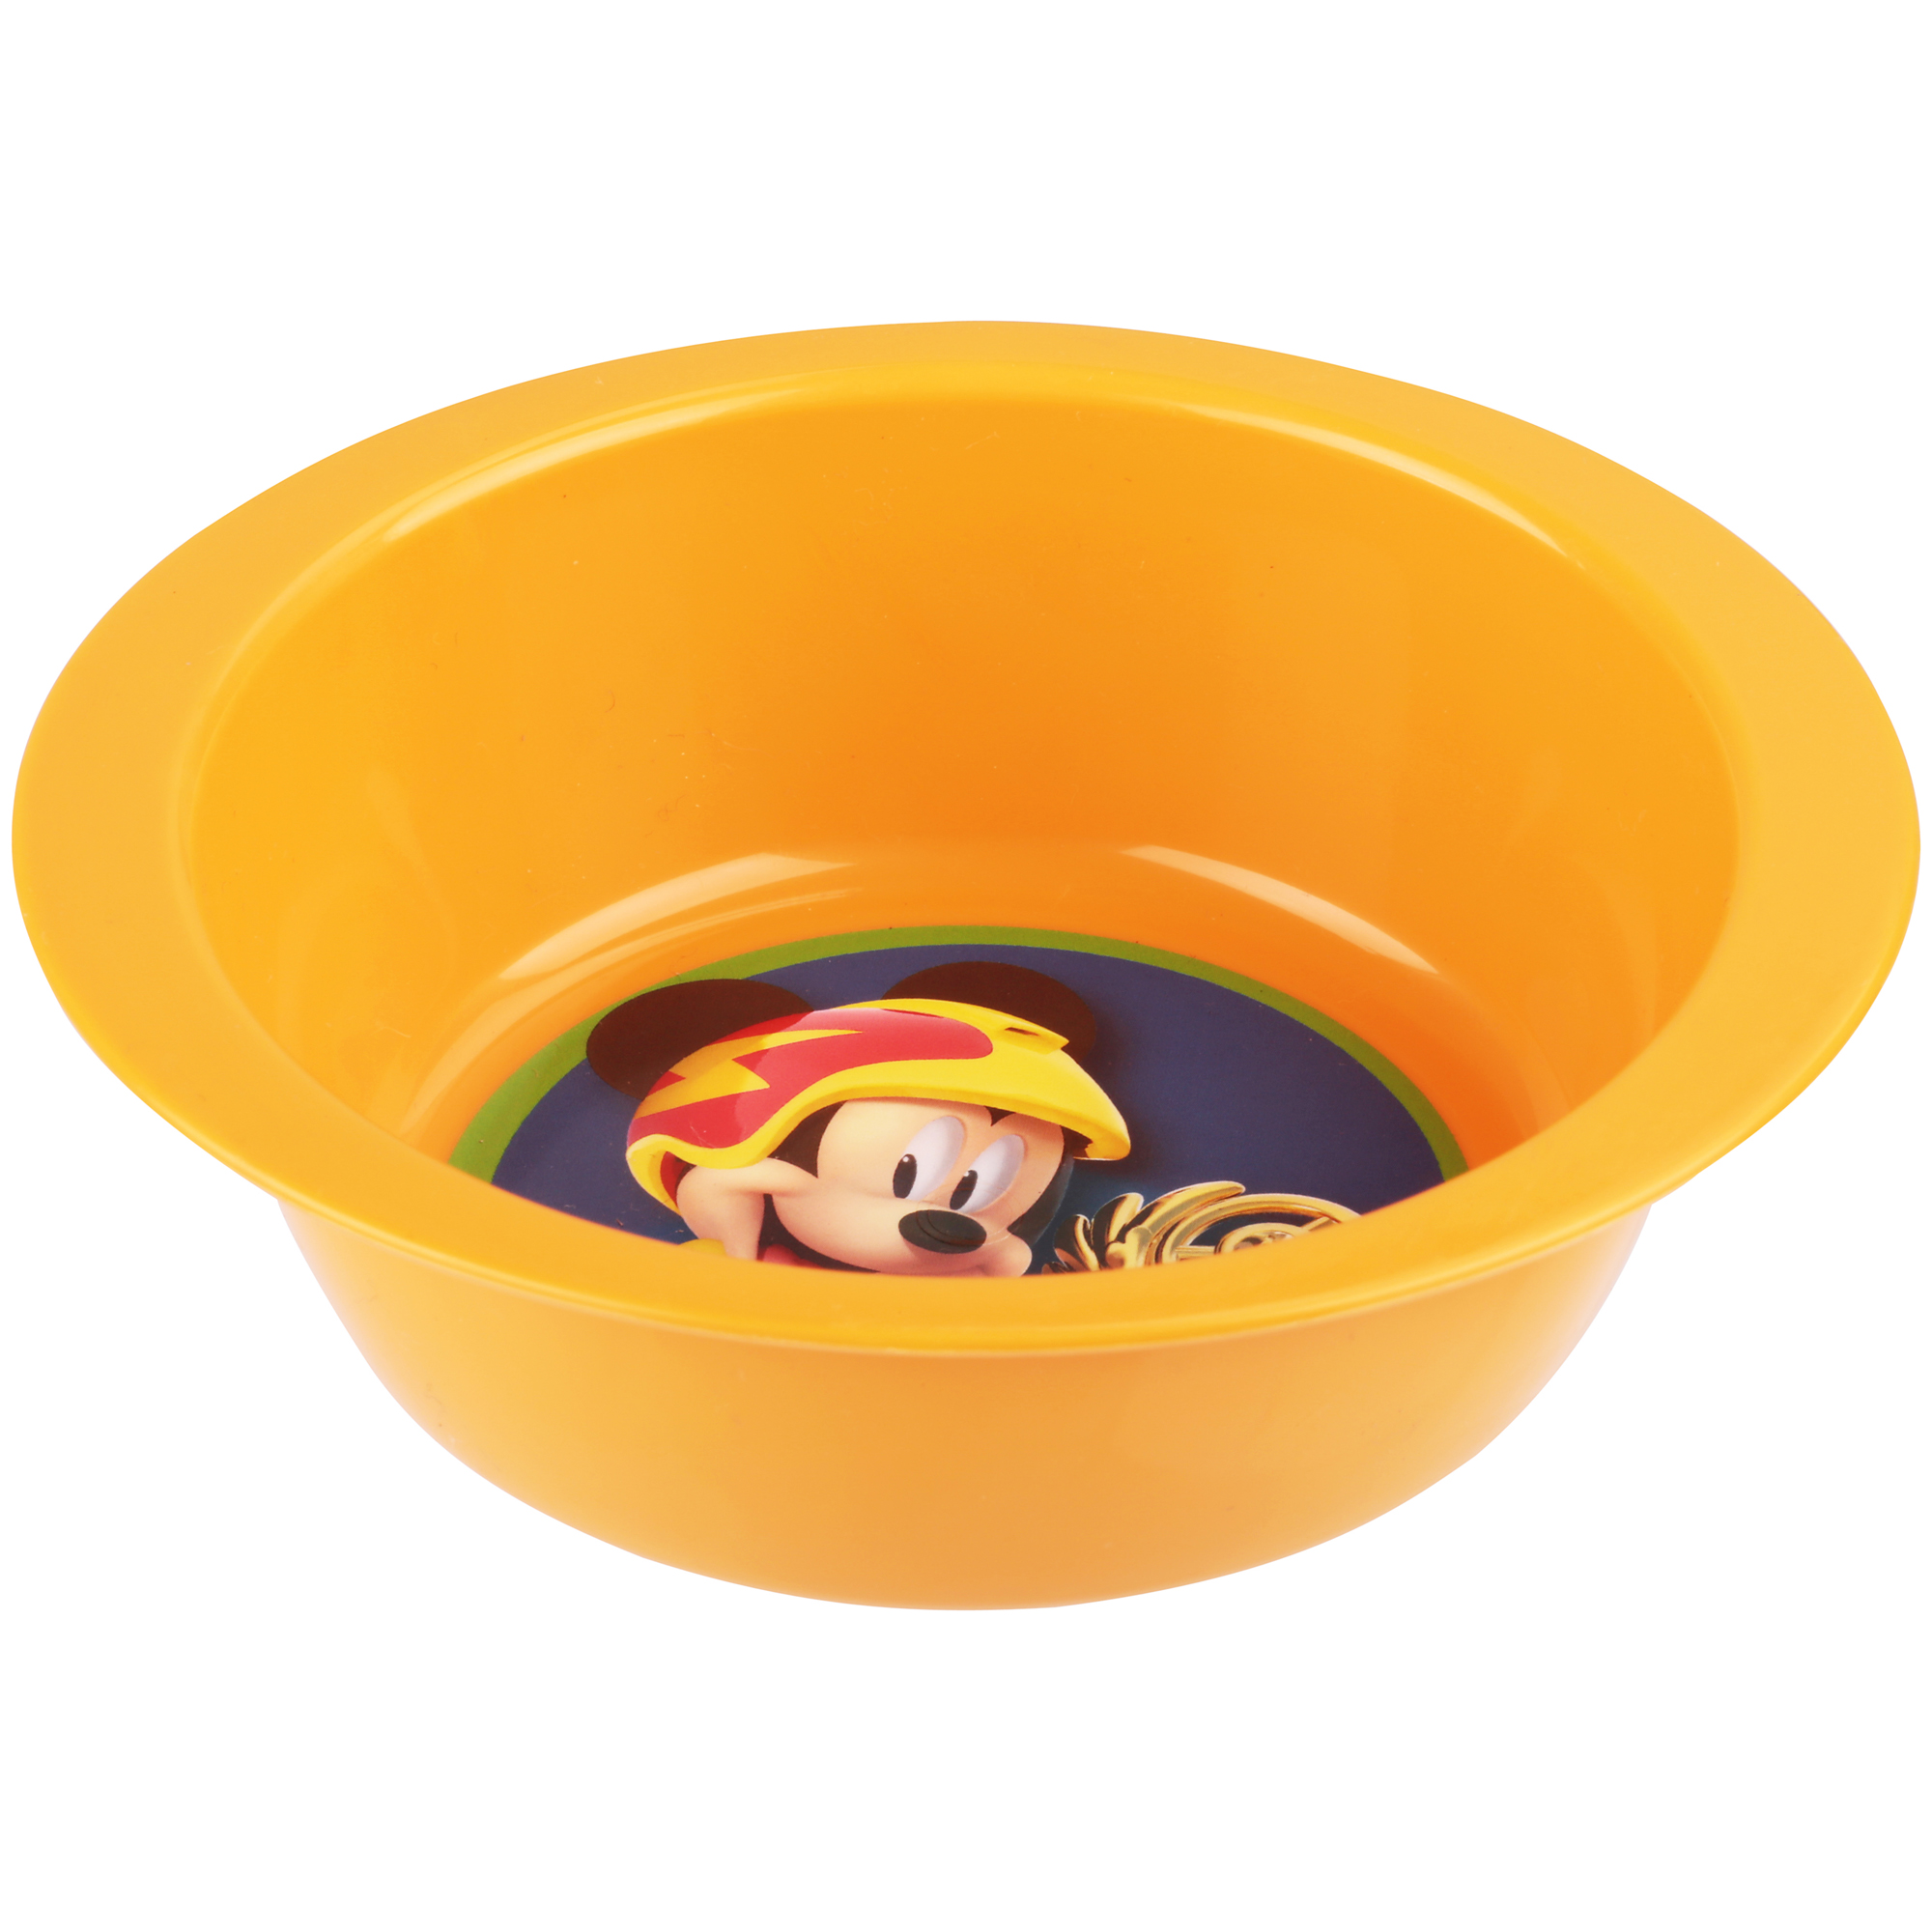 The First Years® Baby Bowl